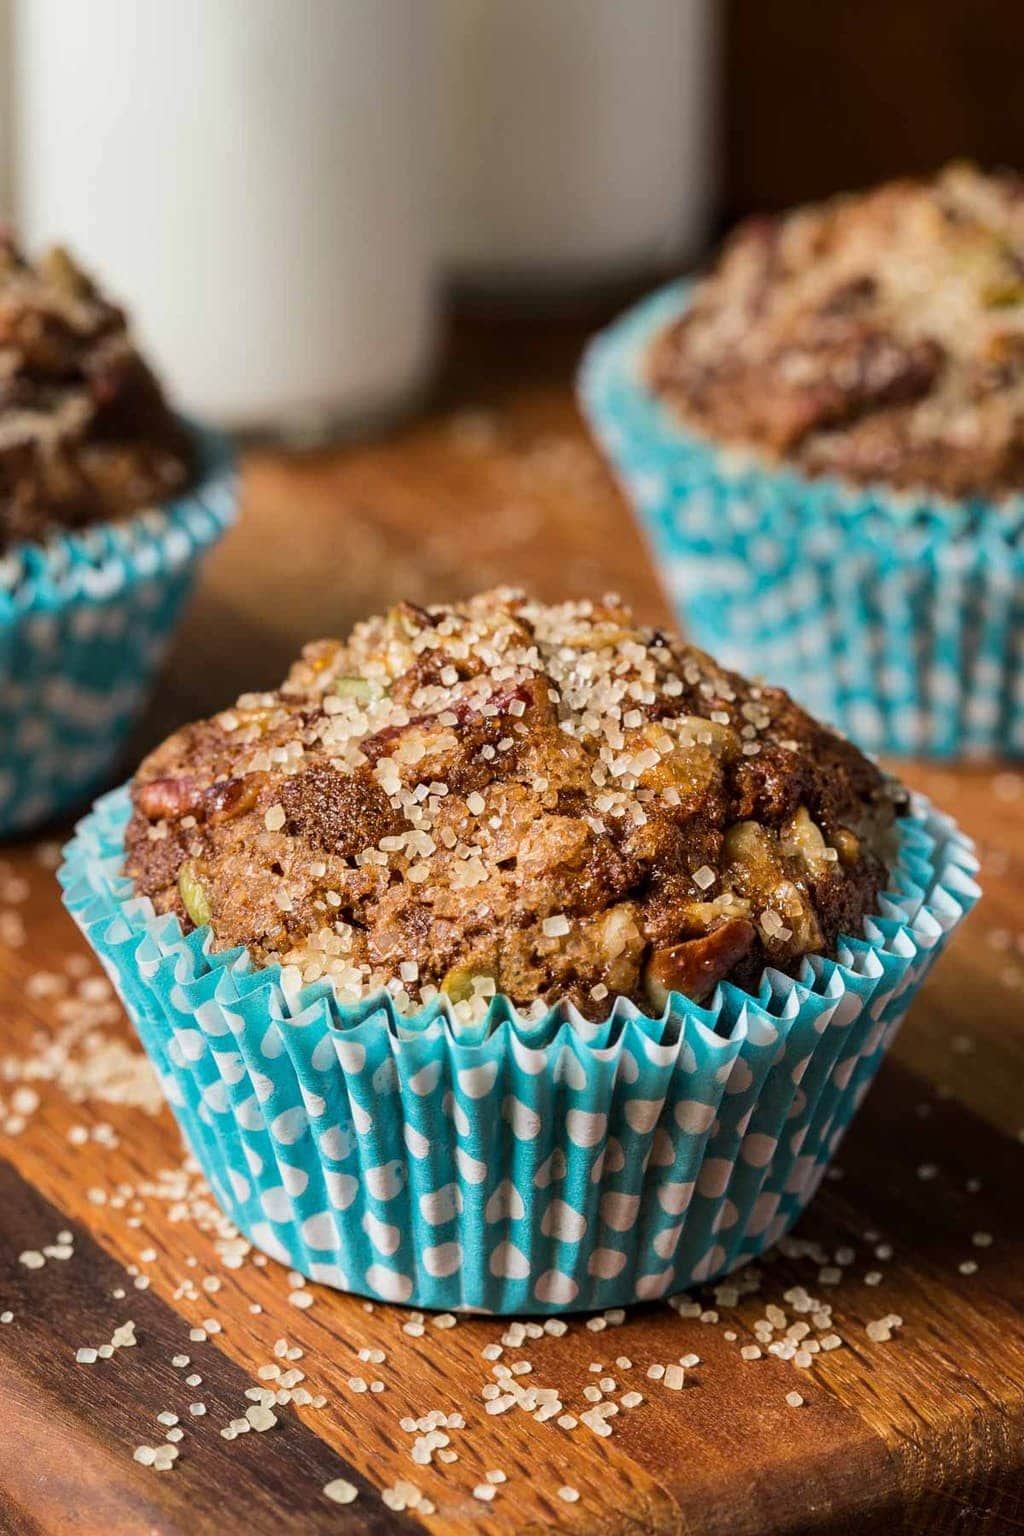 Vertical photo of Zucchini Morning Glory Muffins in turquoise muffin wrapper on a wooden cutting board with glasses of milk in the background.